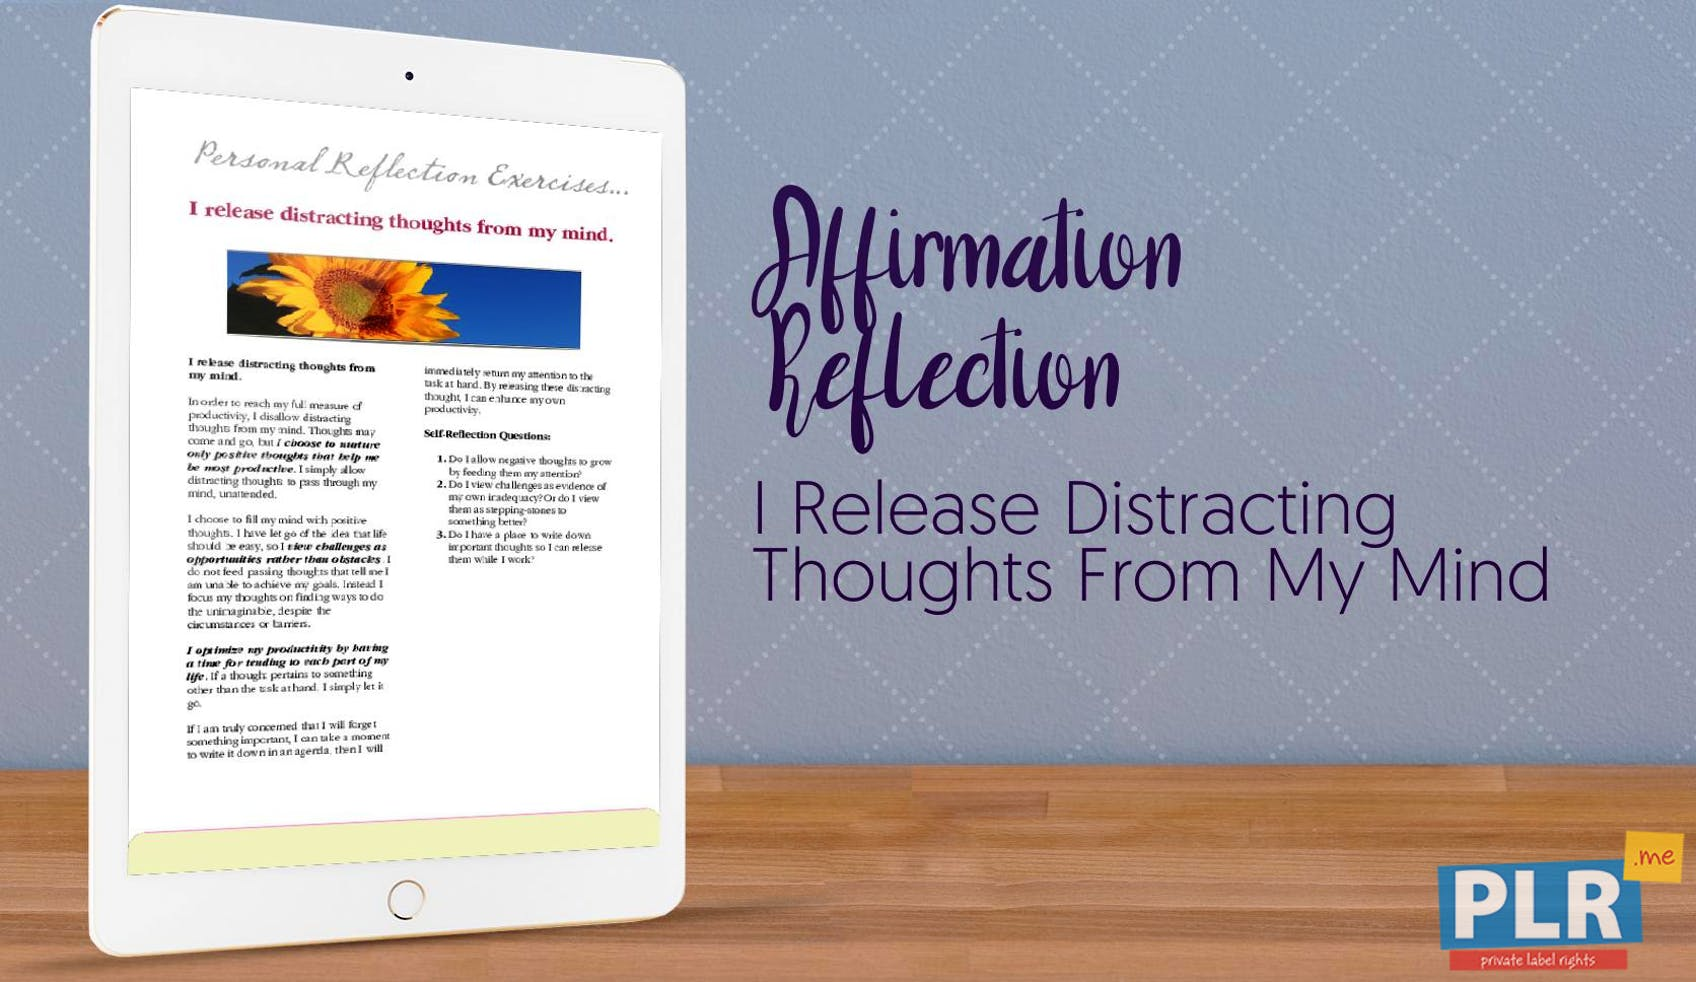 I Release Distracting Thoughts From My Mind